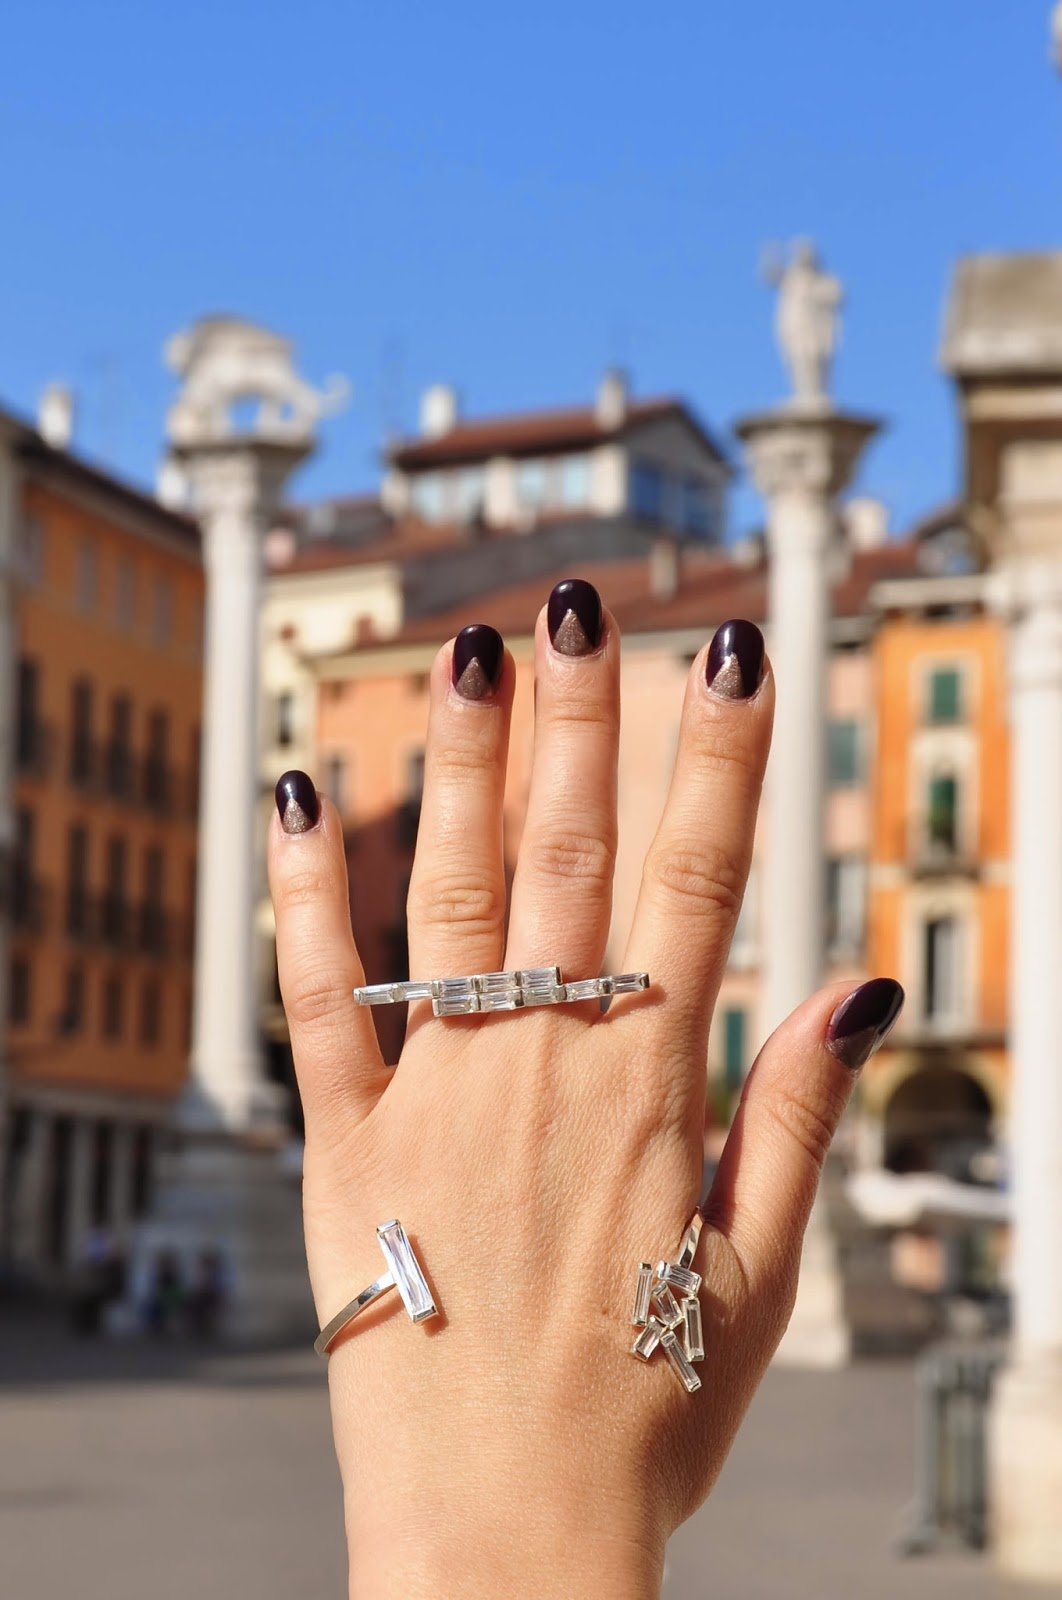 The rings of Antoaneta Ivanova of Antoanetta Fine Jewellery at Piazza dei Signori in Vicenza, Italy